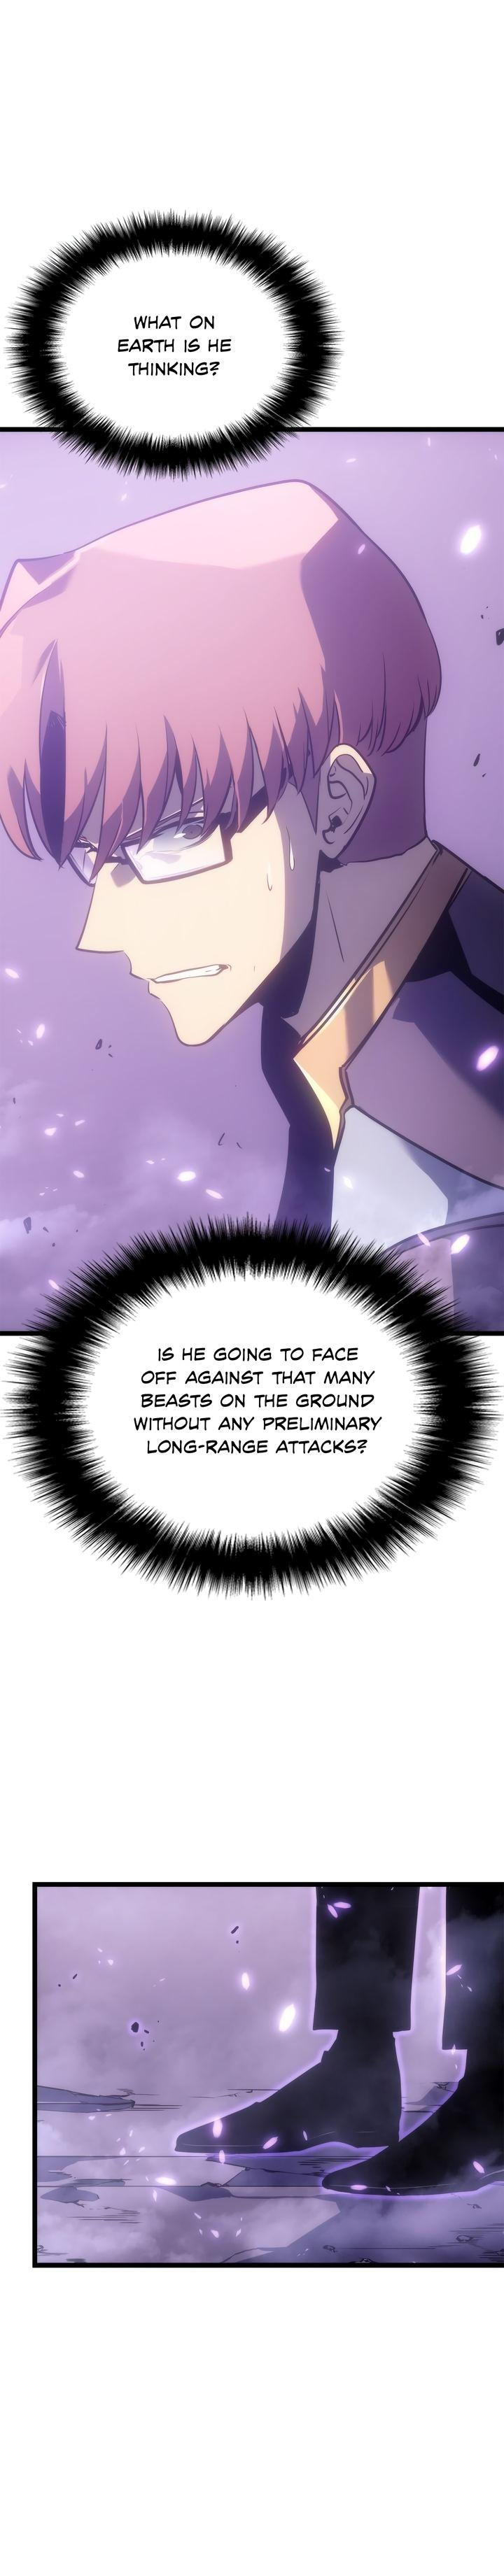 Solo Leveling Chapter 167 Page 6